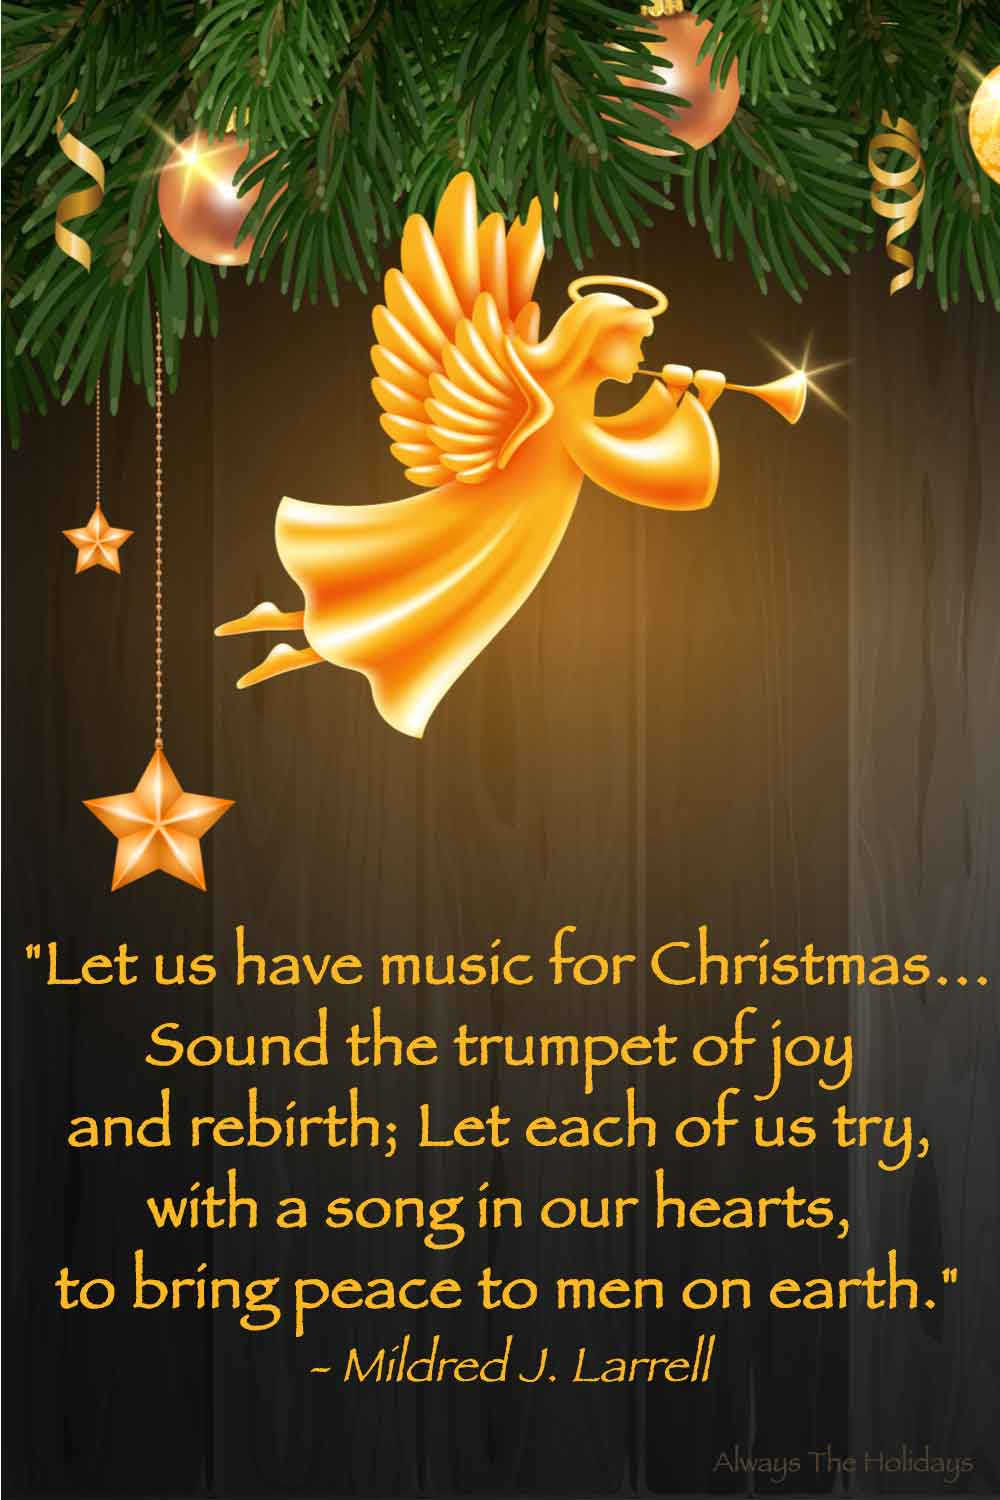 A golden angel with a trumpet in greenery against a wooden background with a text overlay of a religious Christmas quote.